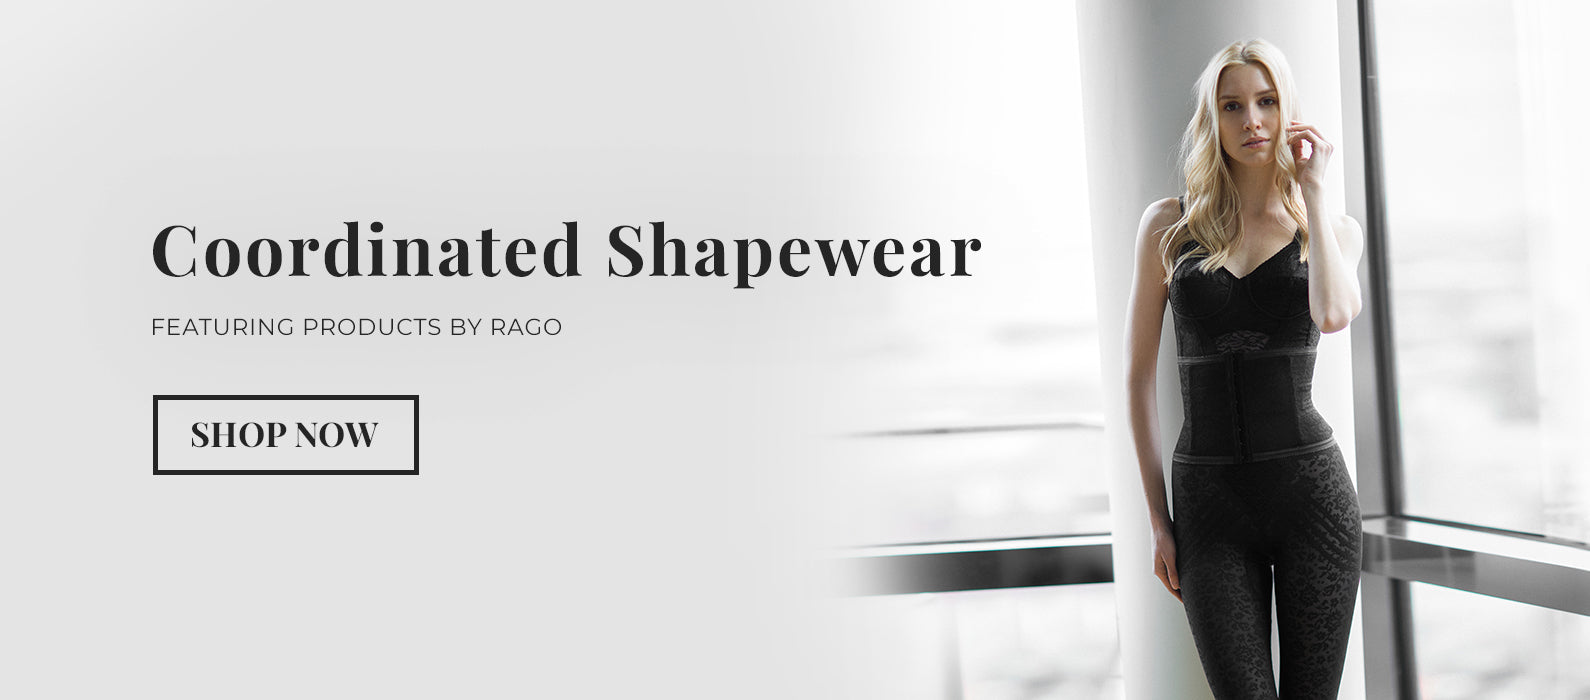 77045b2cdc American Shapewear Featuring Products by Rago